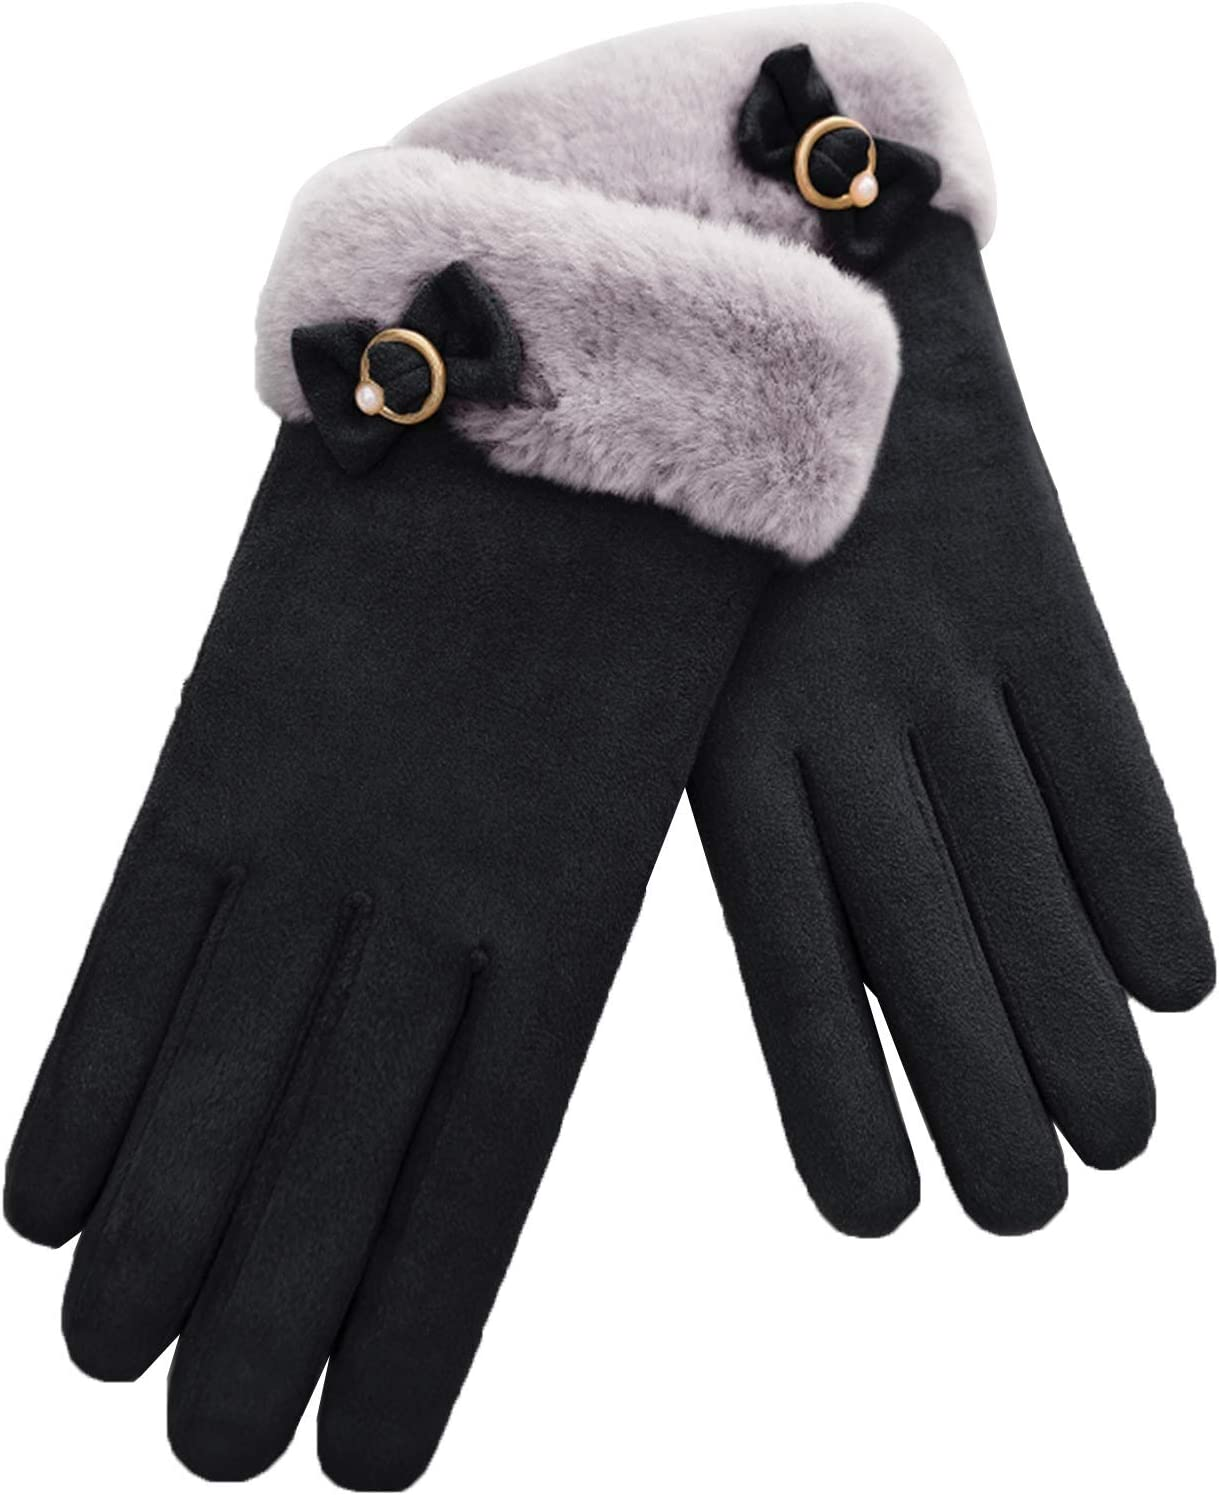 FOLDING Gloves Women's Winter Warm Touch Screen Thick Gloves Windproof Texting Driving Gloves (Color : Black)